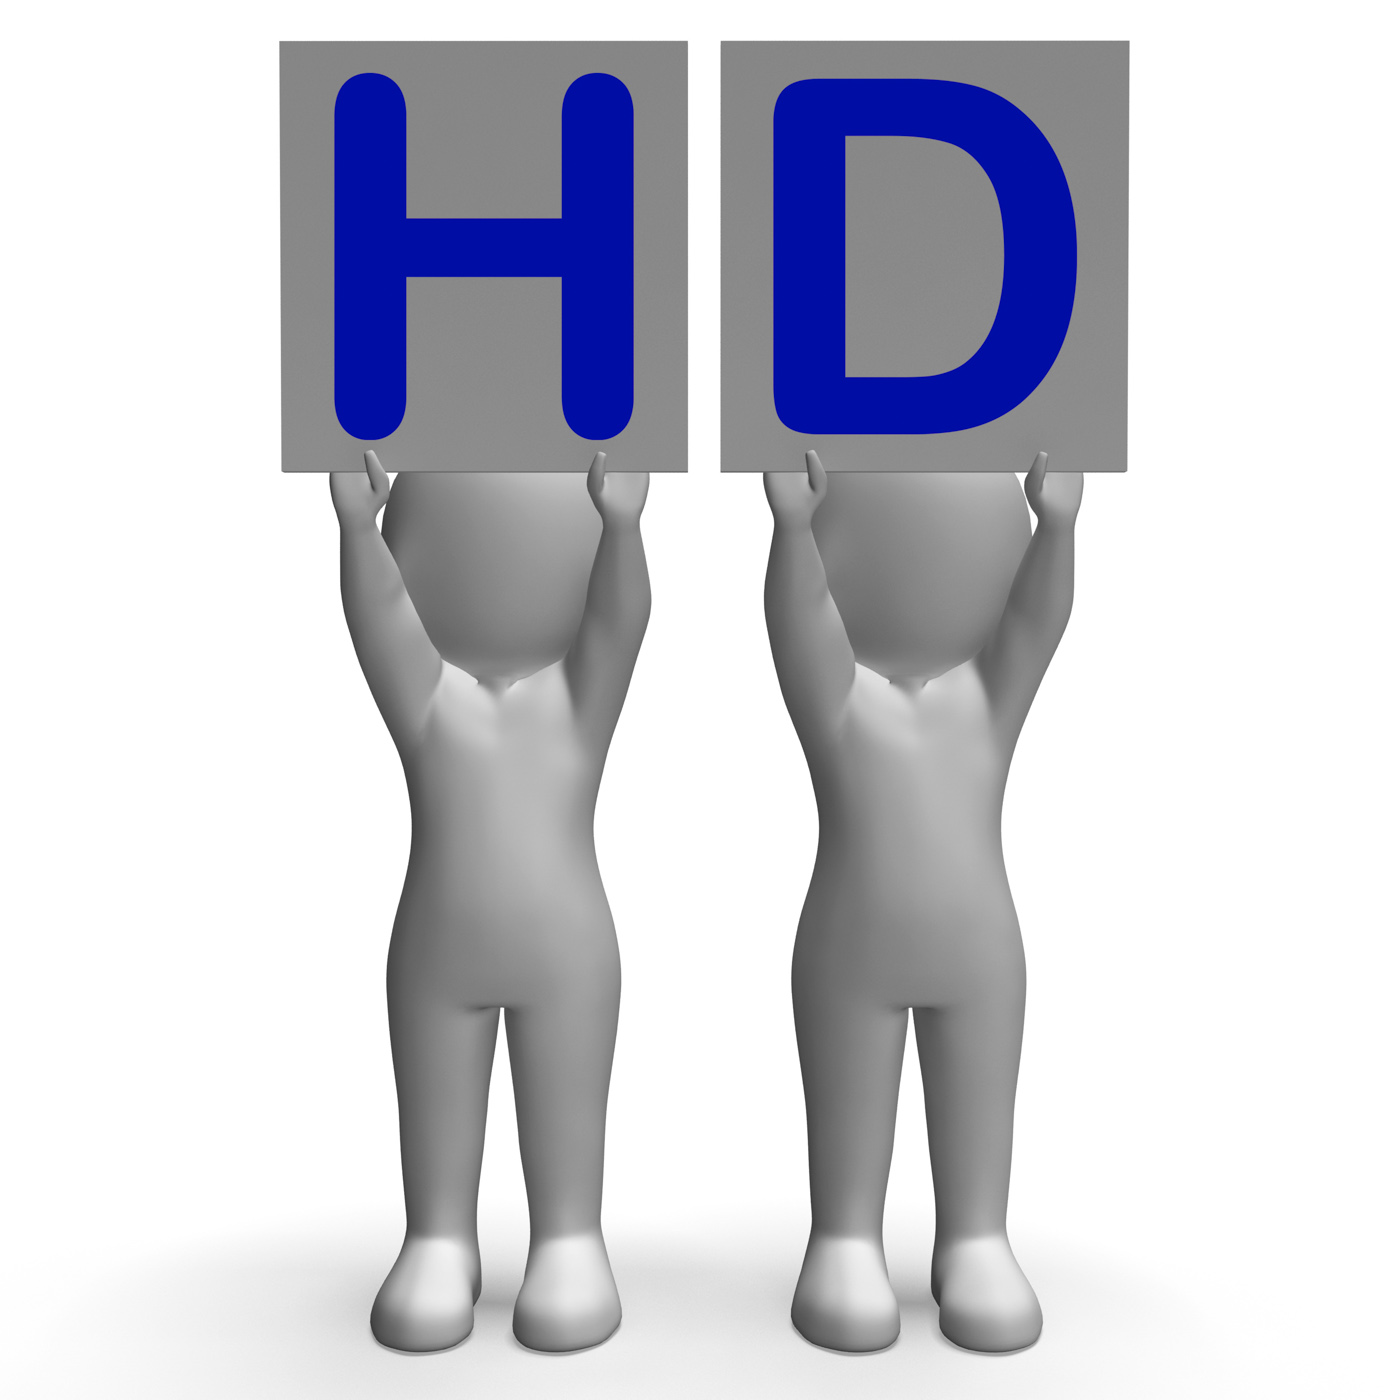 Hd banners mean high definition television or high resolution photo